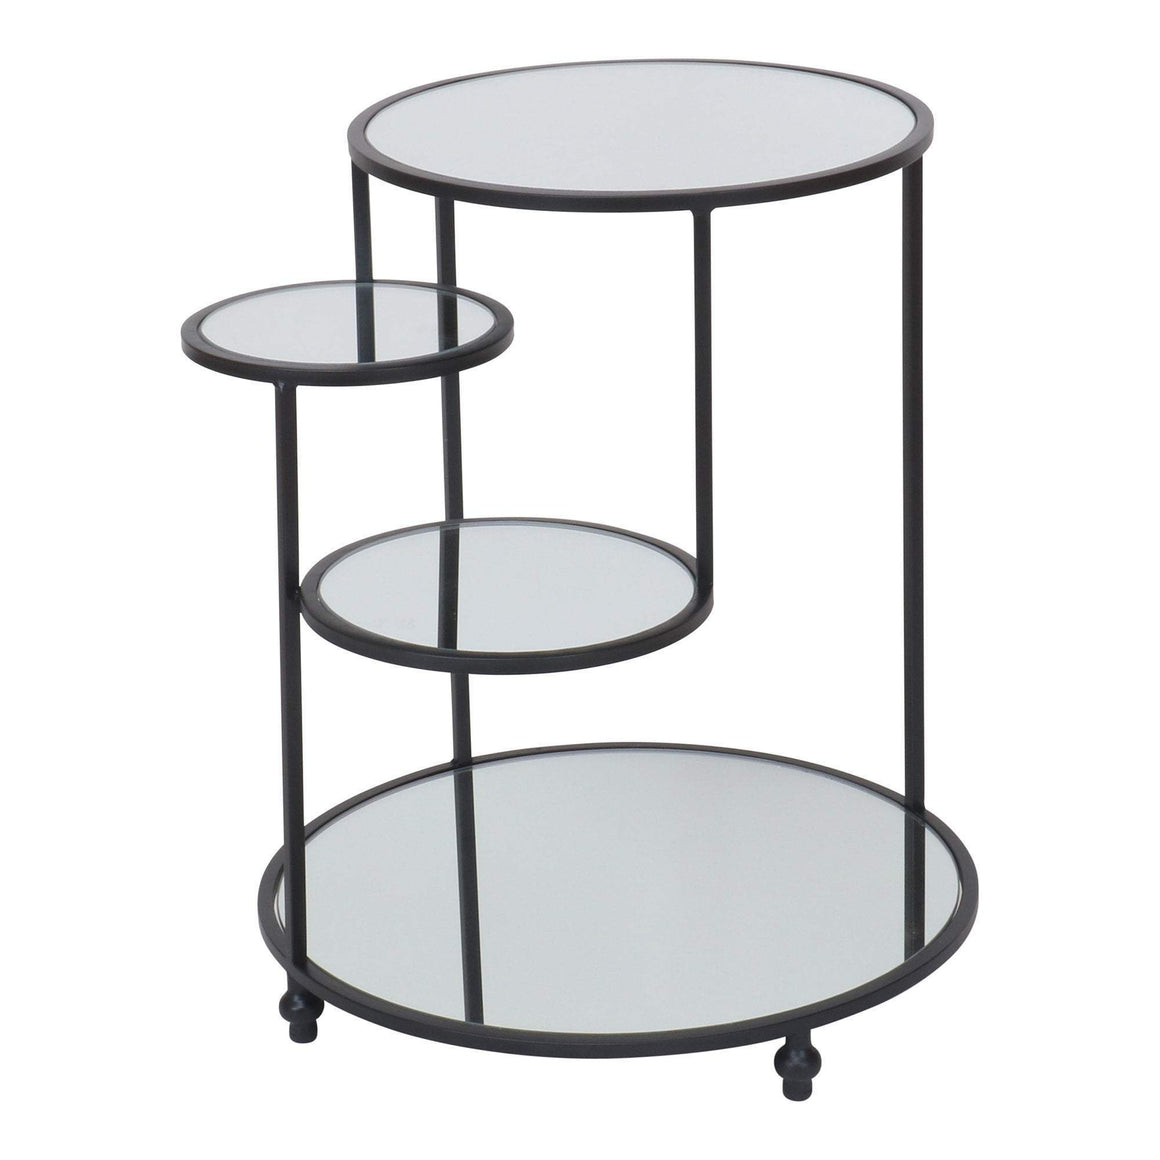 BLACK STEPPED 4 TIER SIDE TABLE